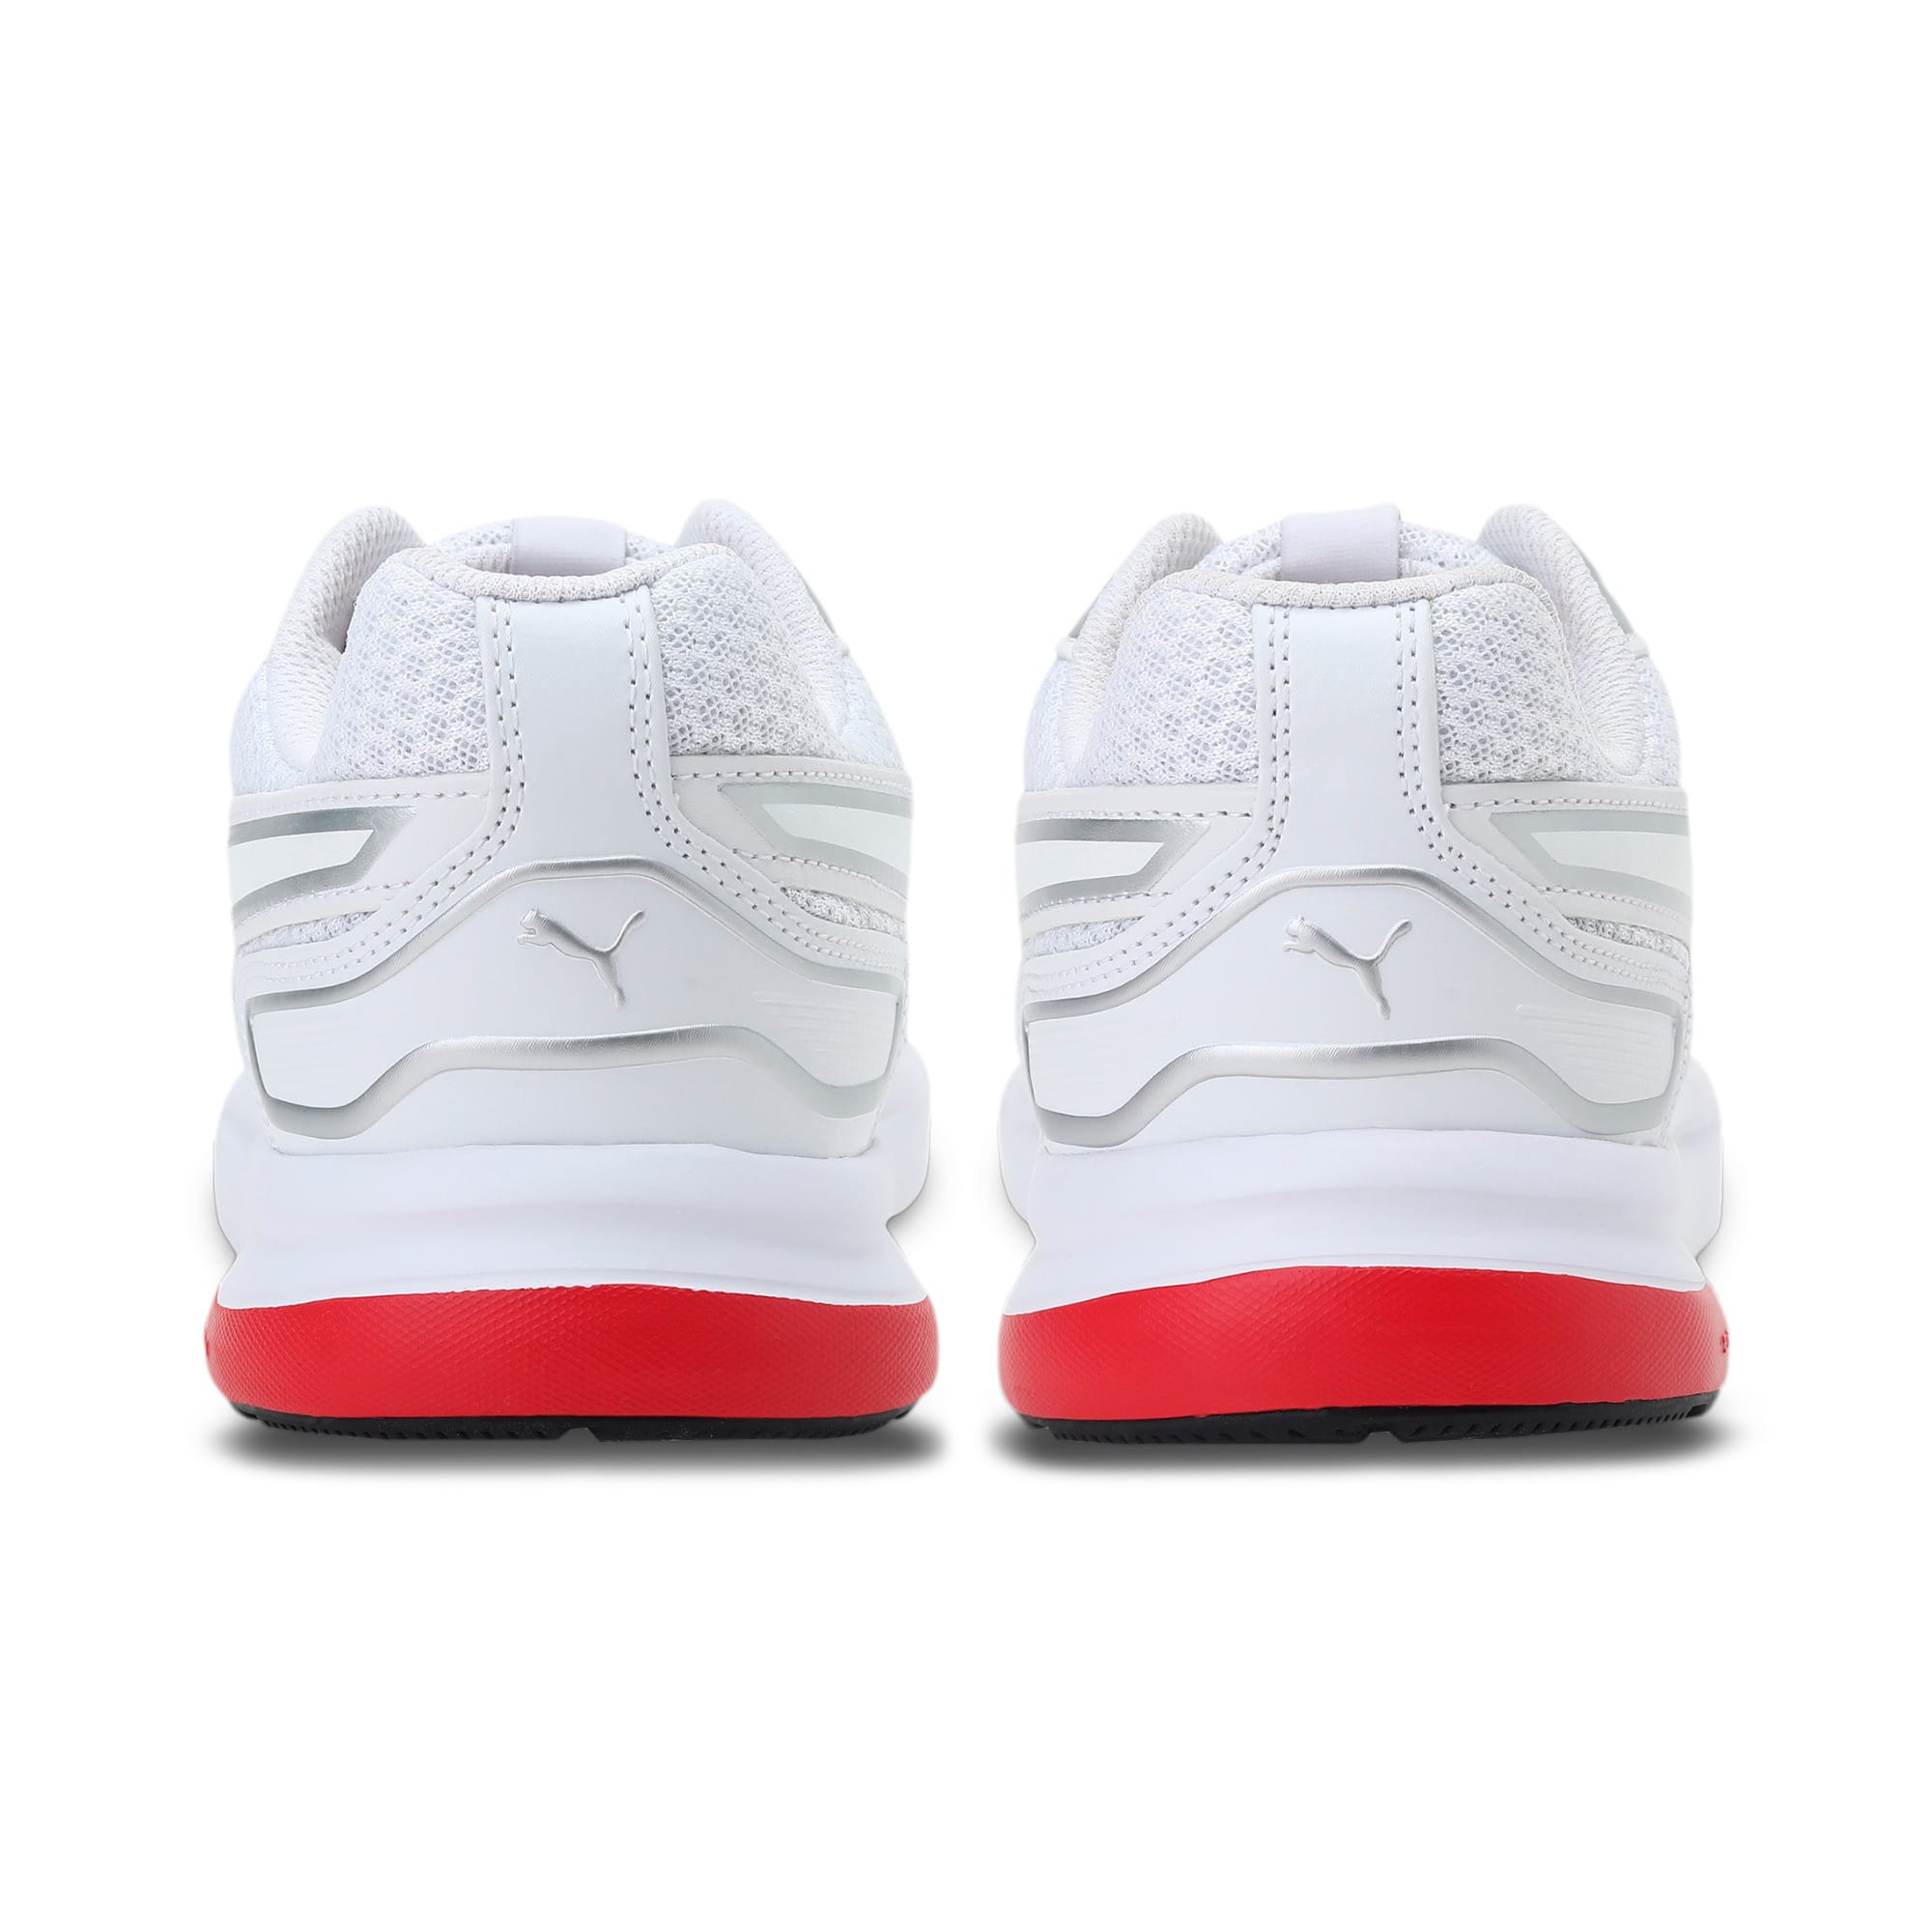 Thumbnail 3 of Escaper Tech Sneakers, White-Silver-High Risk Red, medium-IND